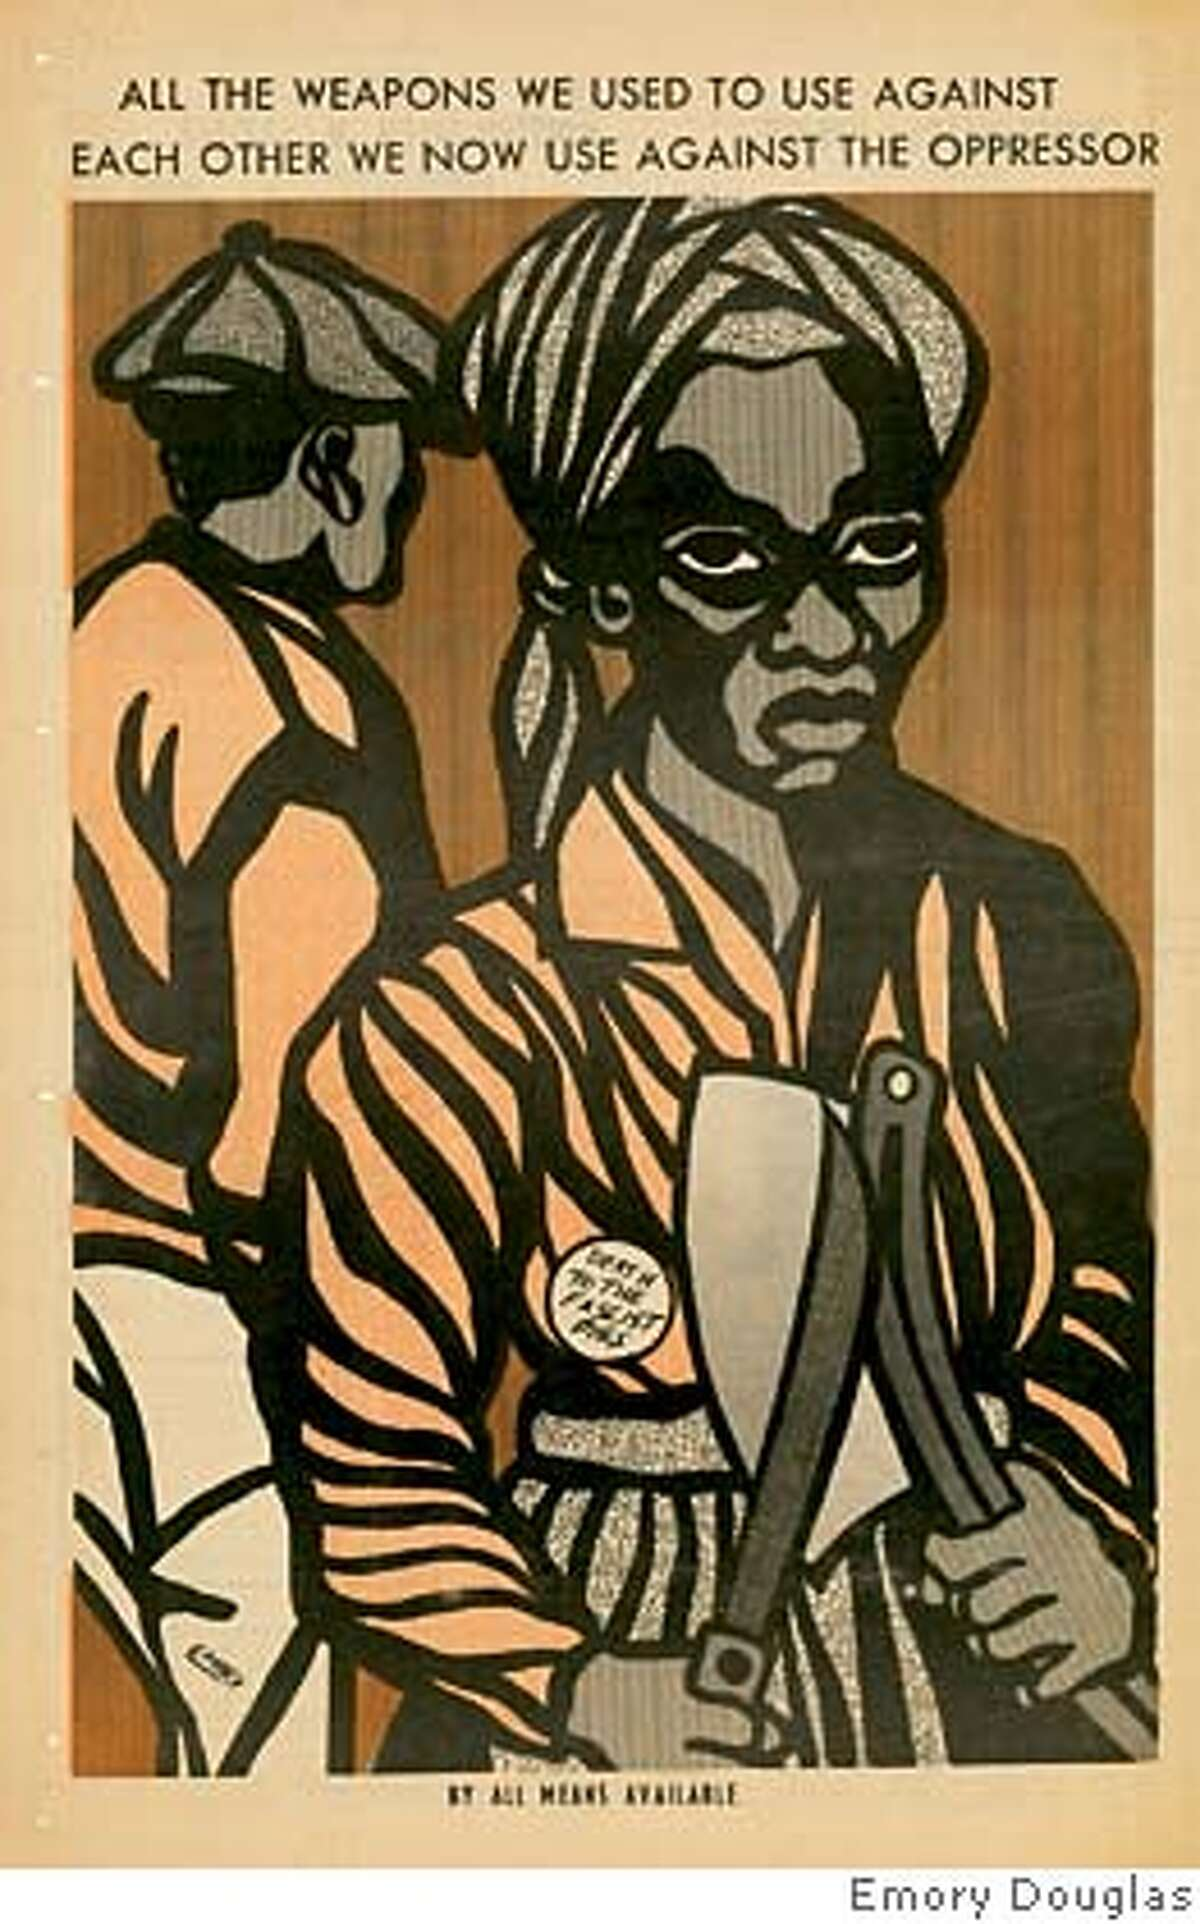 July 4, 1970-- Orange shirt figure holding machete and knife text says by all means available All artwork copyright � Emory Douglas from BLACK PANTHER: THE REVOLUTIONARY ART OF EMORY DOUGLAS edited by Sam Durant, Rizzoli New York, 2007., unless otherwise noted and credit for the book must read � BLACK PANTHER: THE REVOLUTIONARY ART OF EMORY DOUGLAS edited by Sam Durant, Rizzoli New York, 2007.